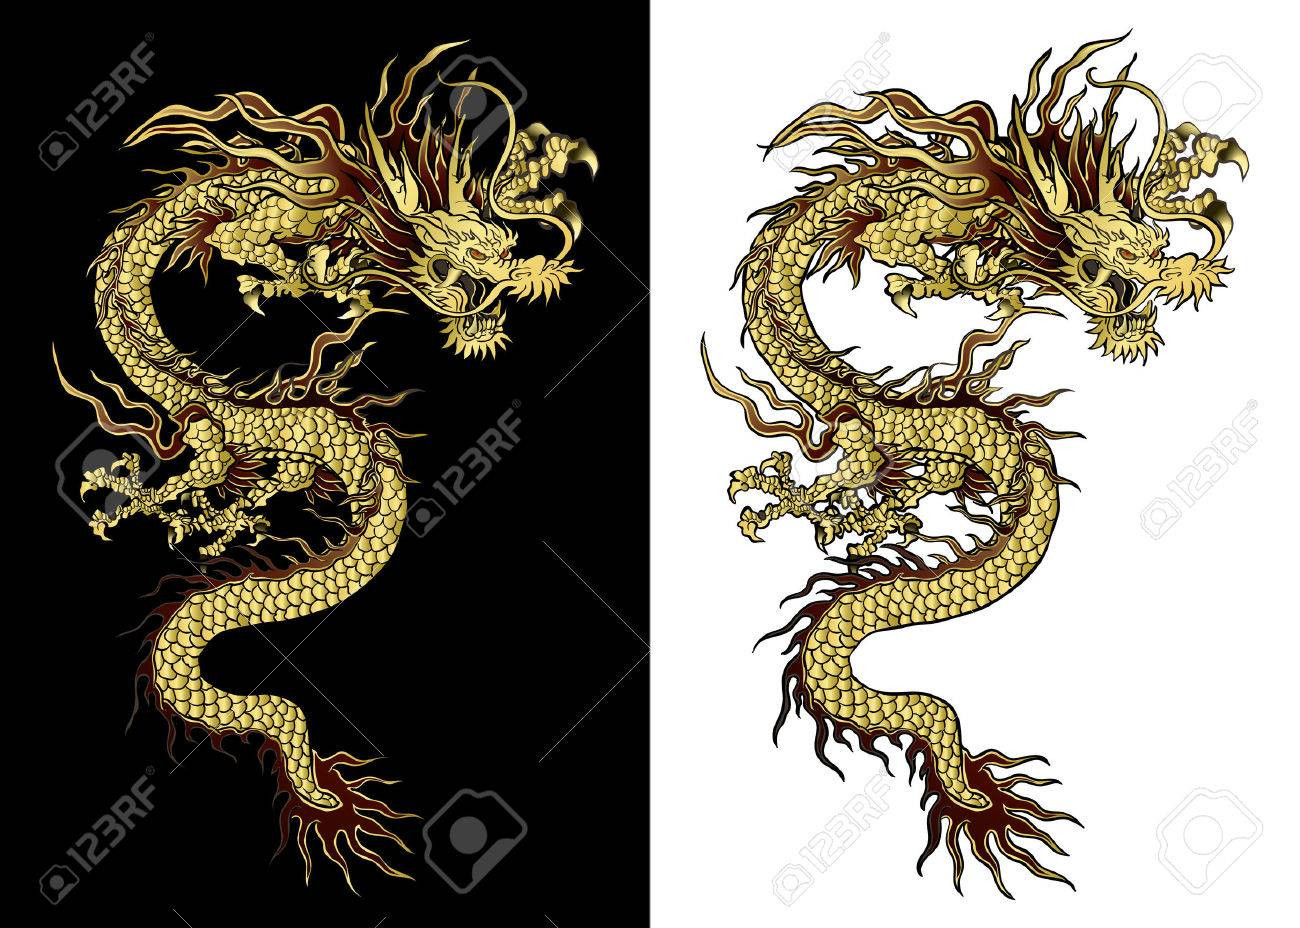 vector illustration Traditional Chinese dragon gold on a black